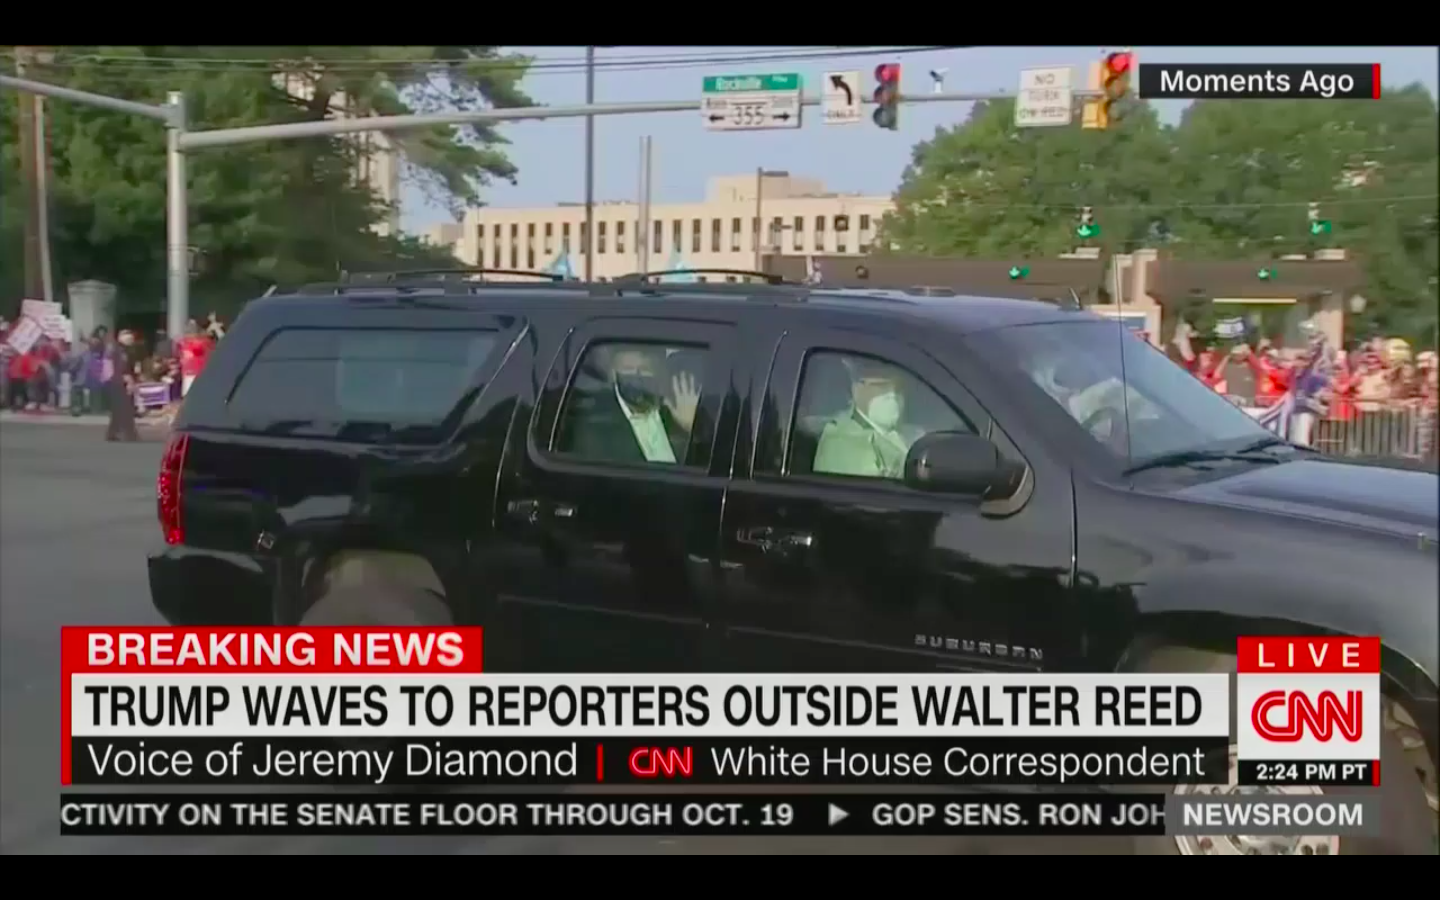 BREAKING: Trump Spotted in SUV Waving to Supporters Driving Around Walter Reed